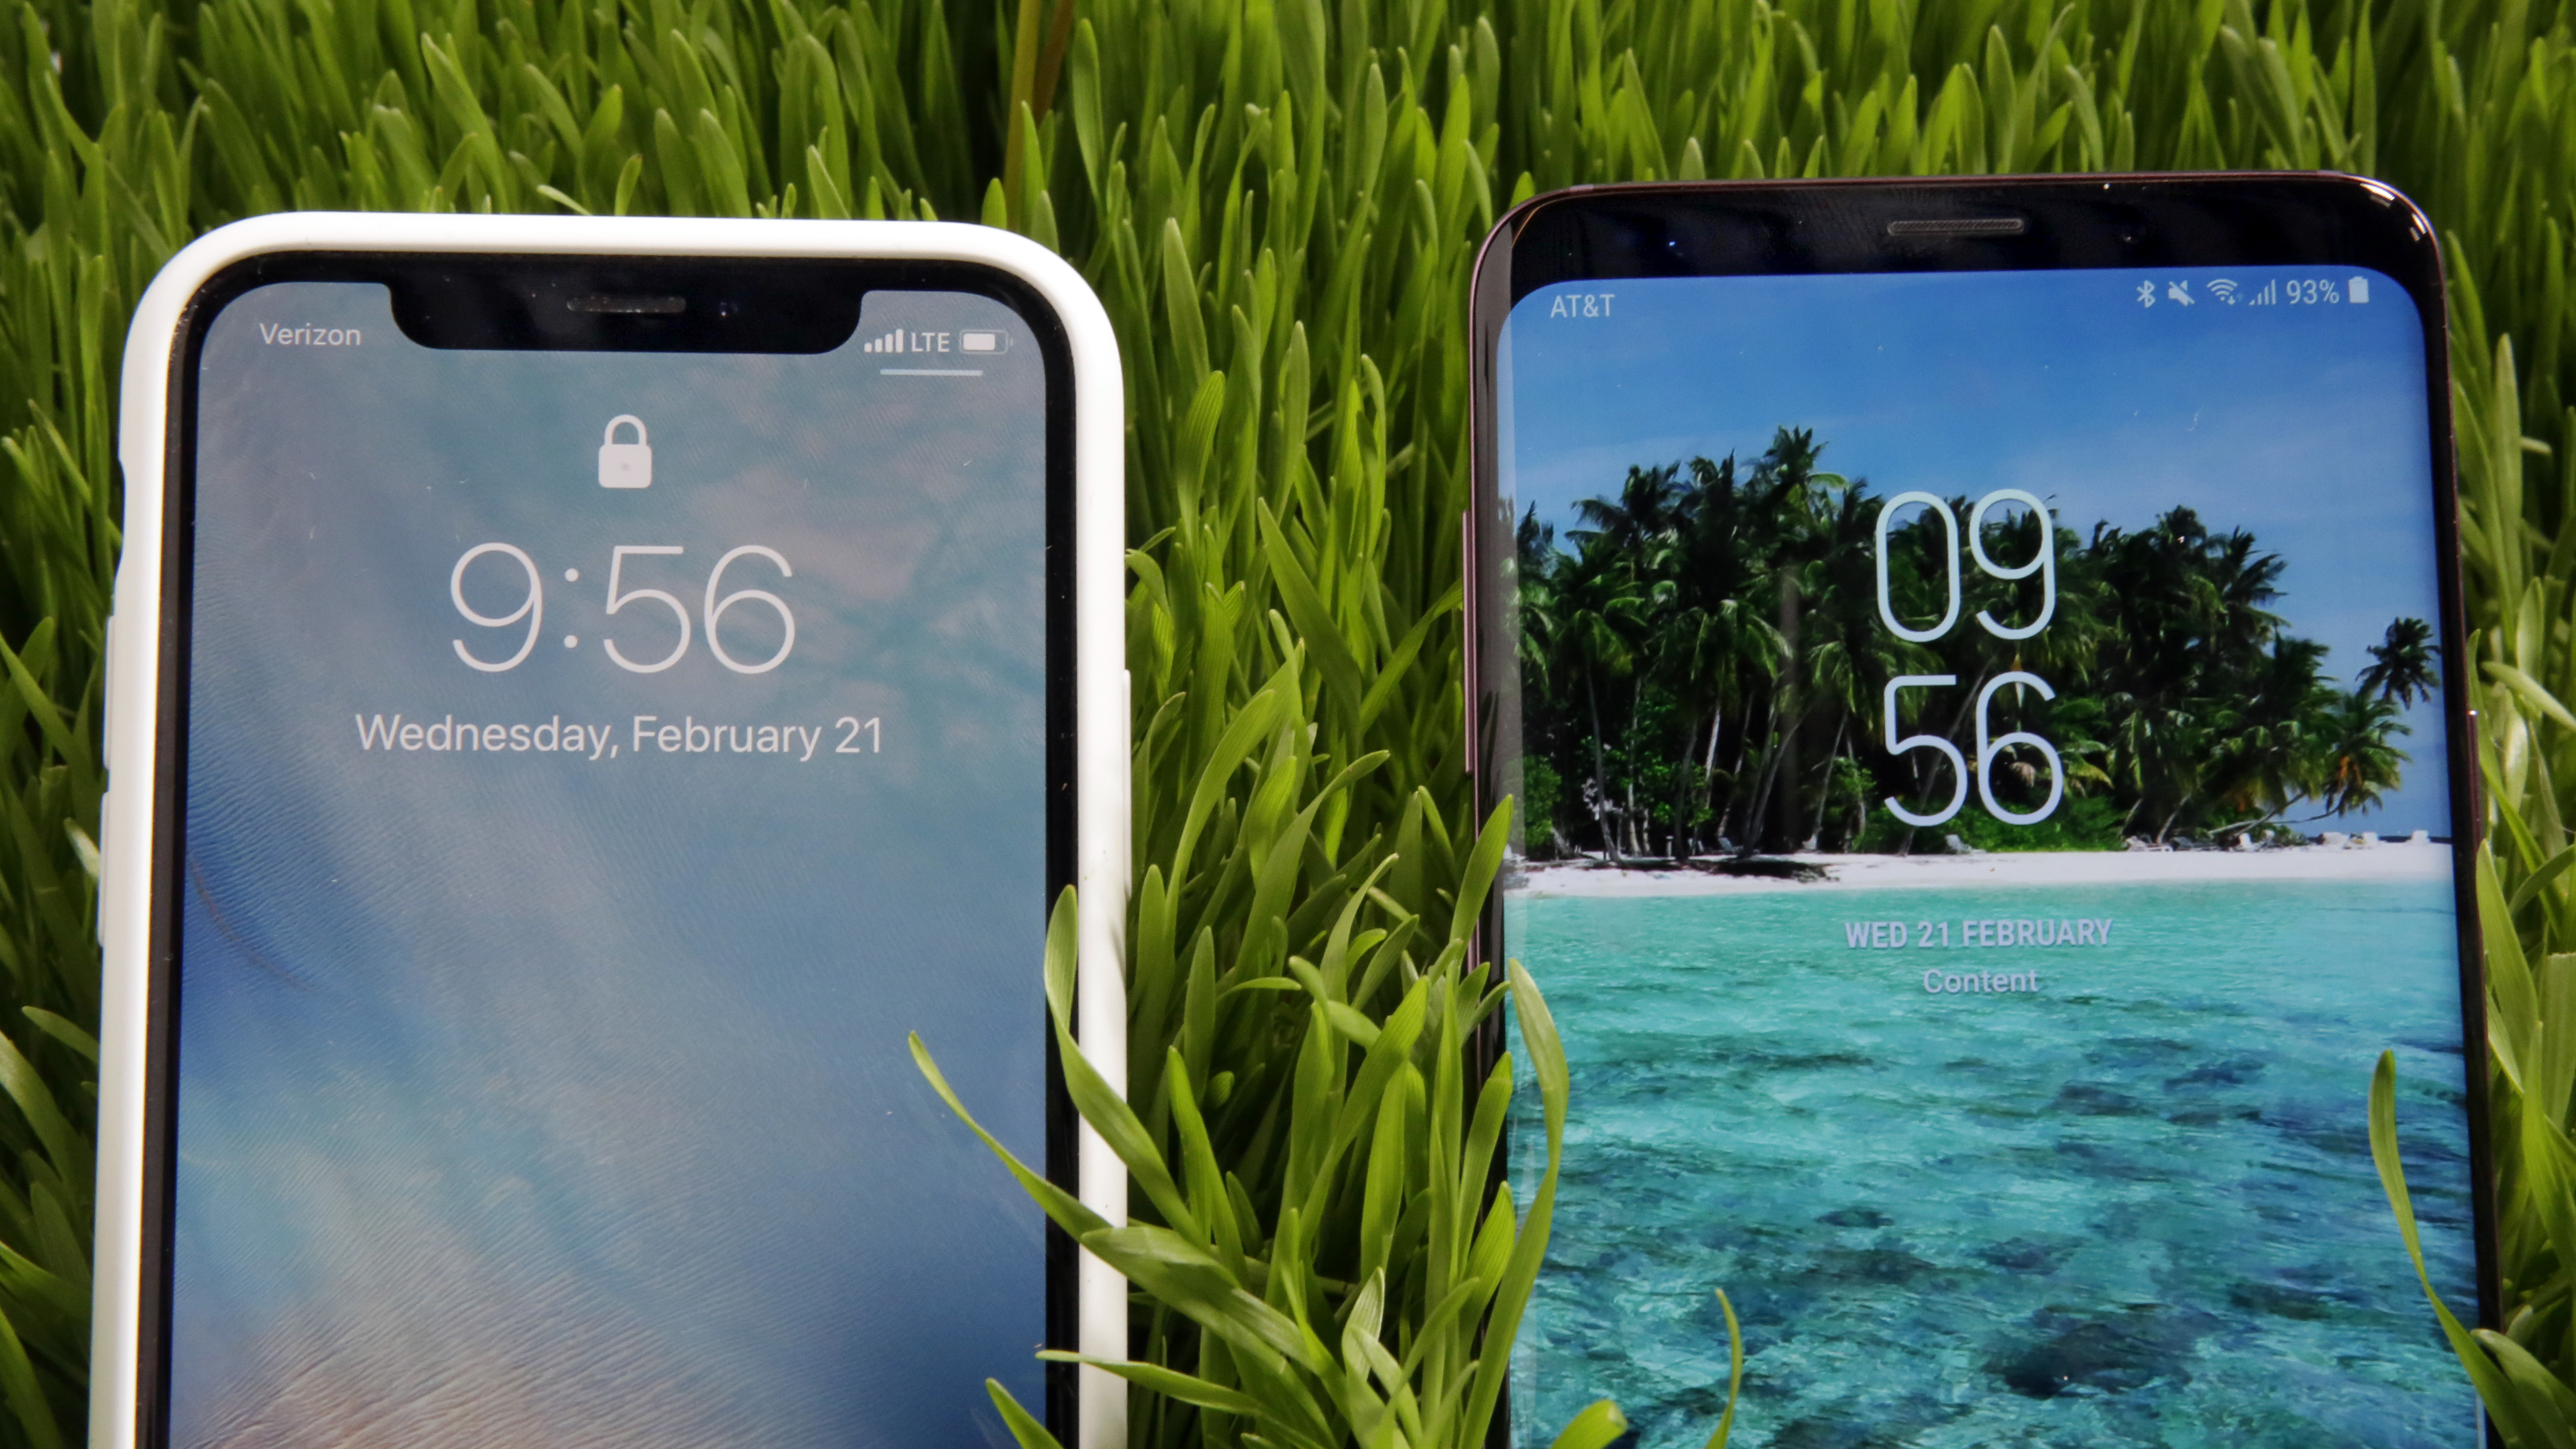 iPhone X versus Samsung Galaxy S9 comparison: What's really the